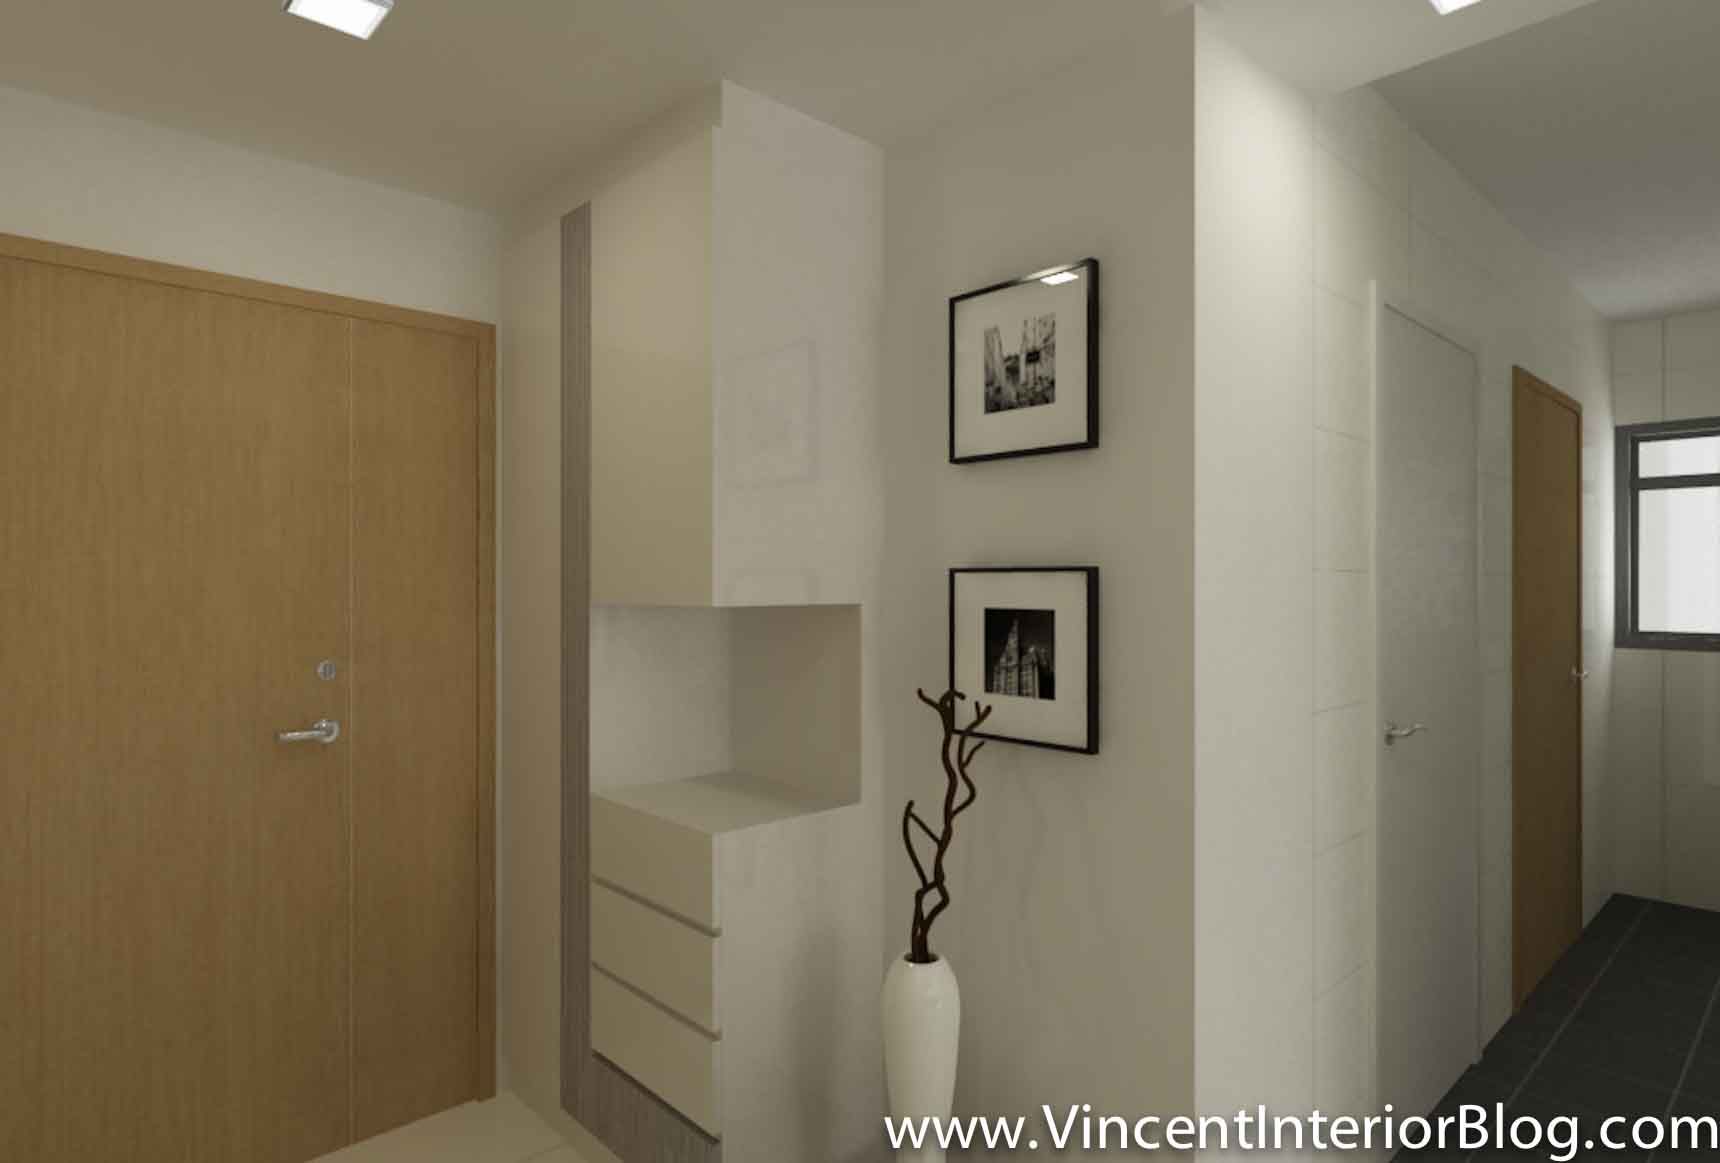 Bto 3 room hdb renovation by interior designer ben ng for 3 room design ideas